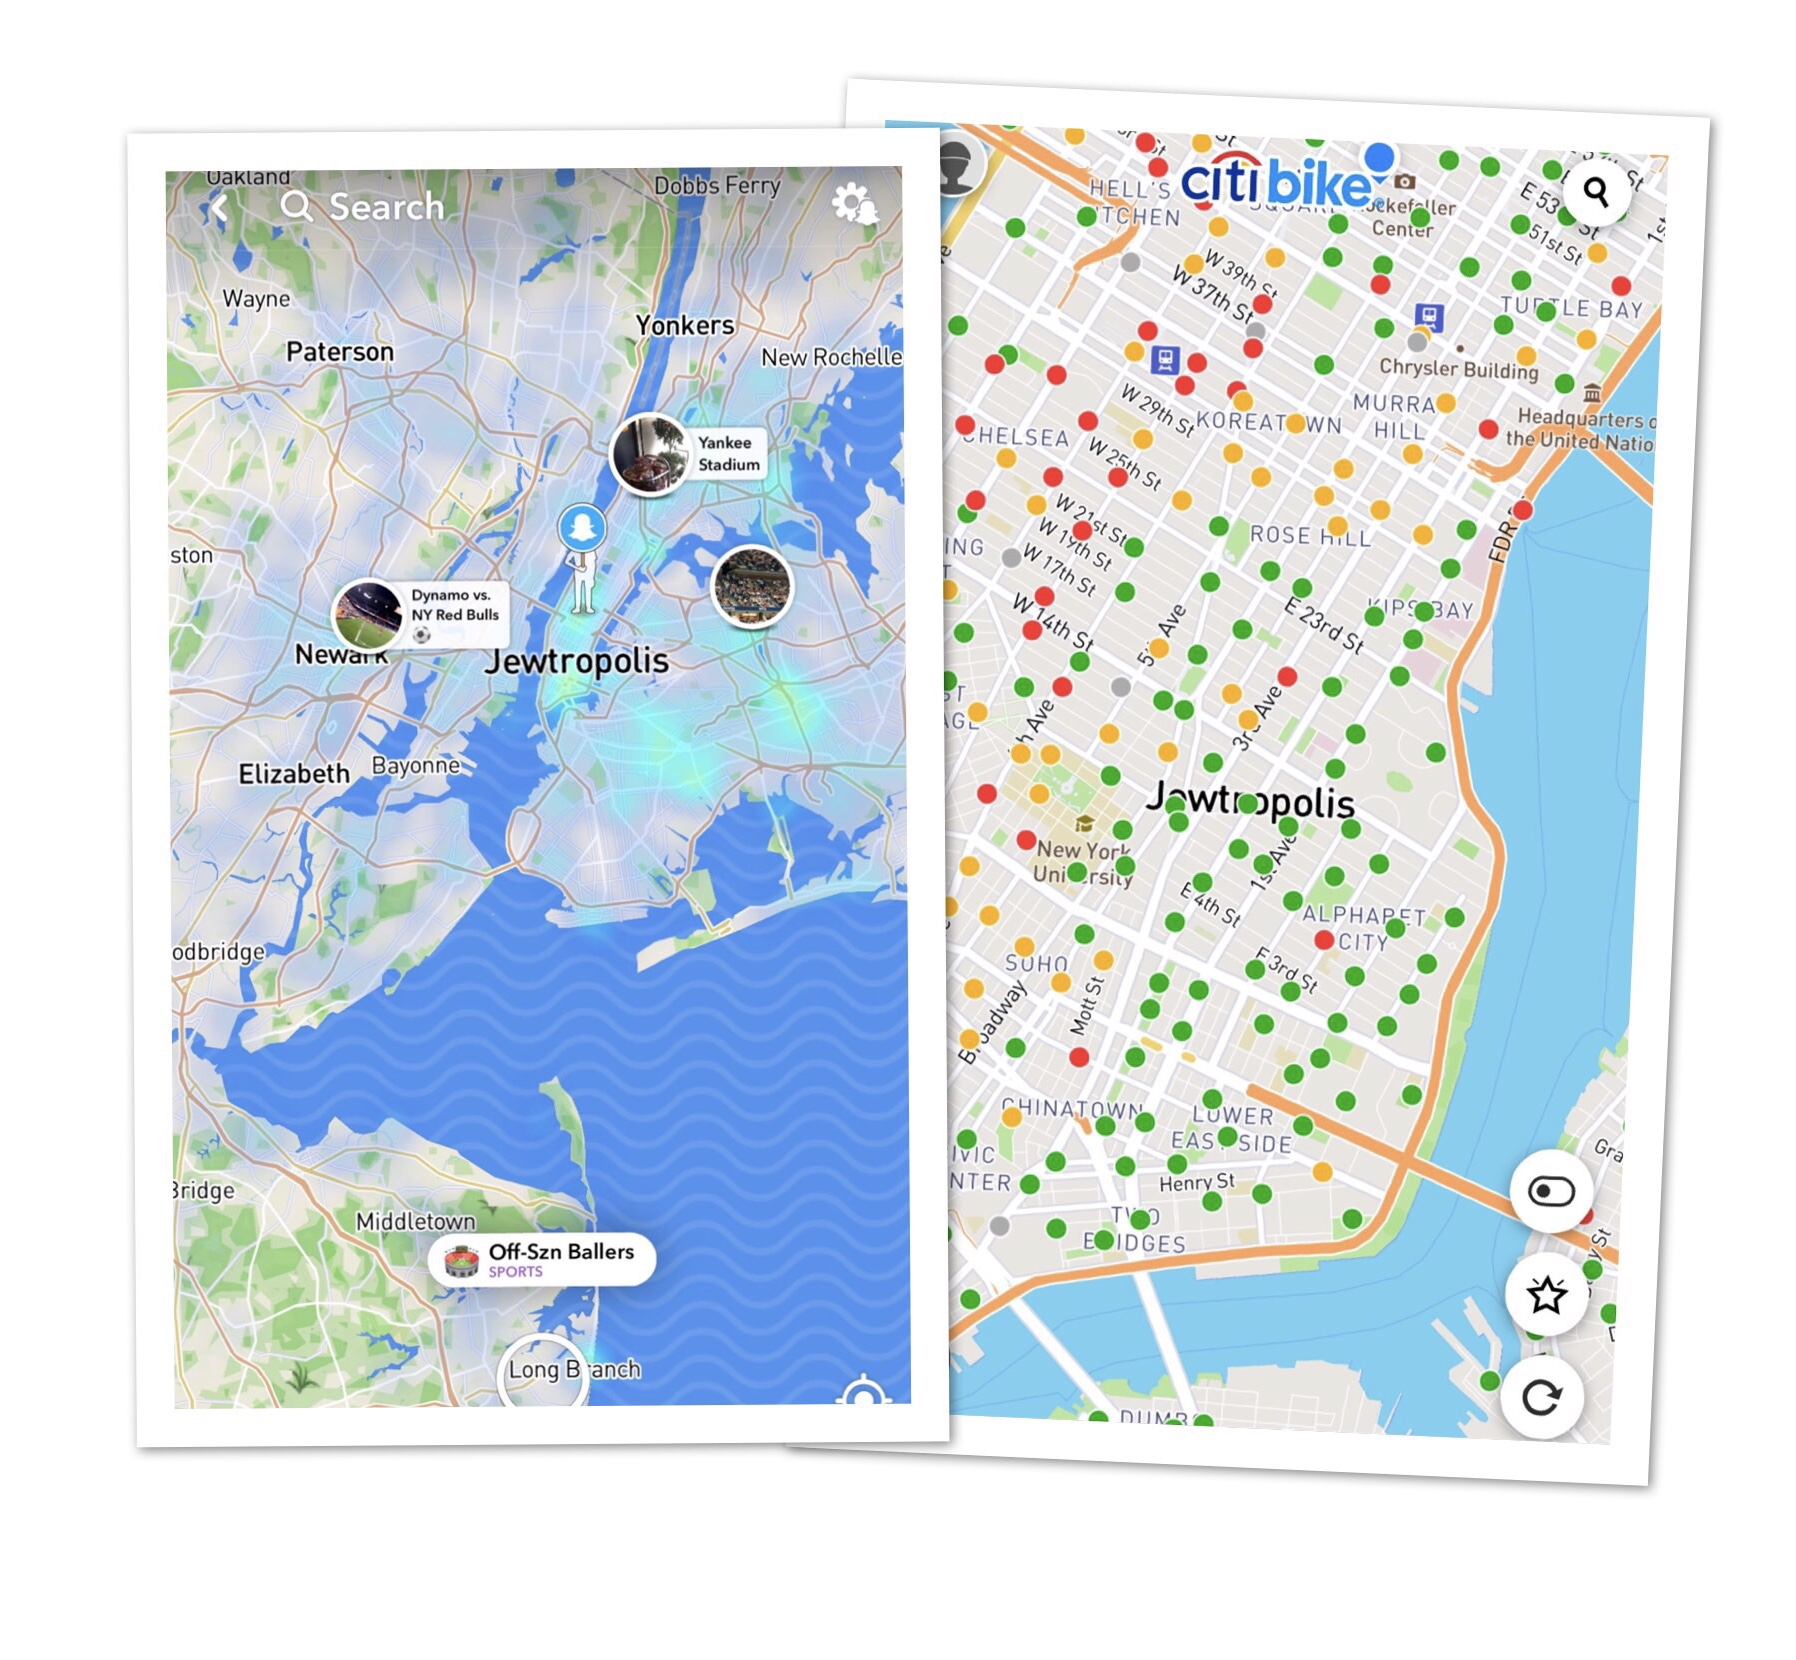 Users outraged in NYC after Apparent Map Hack in Snapchat shows NYC